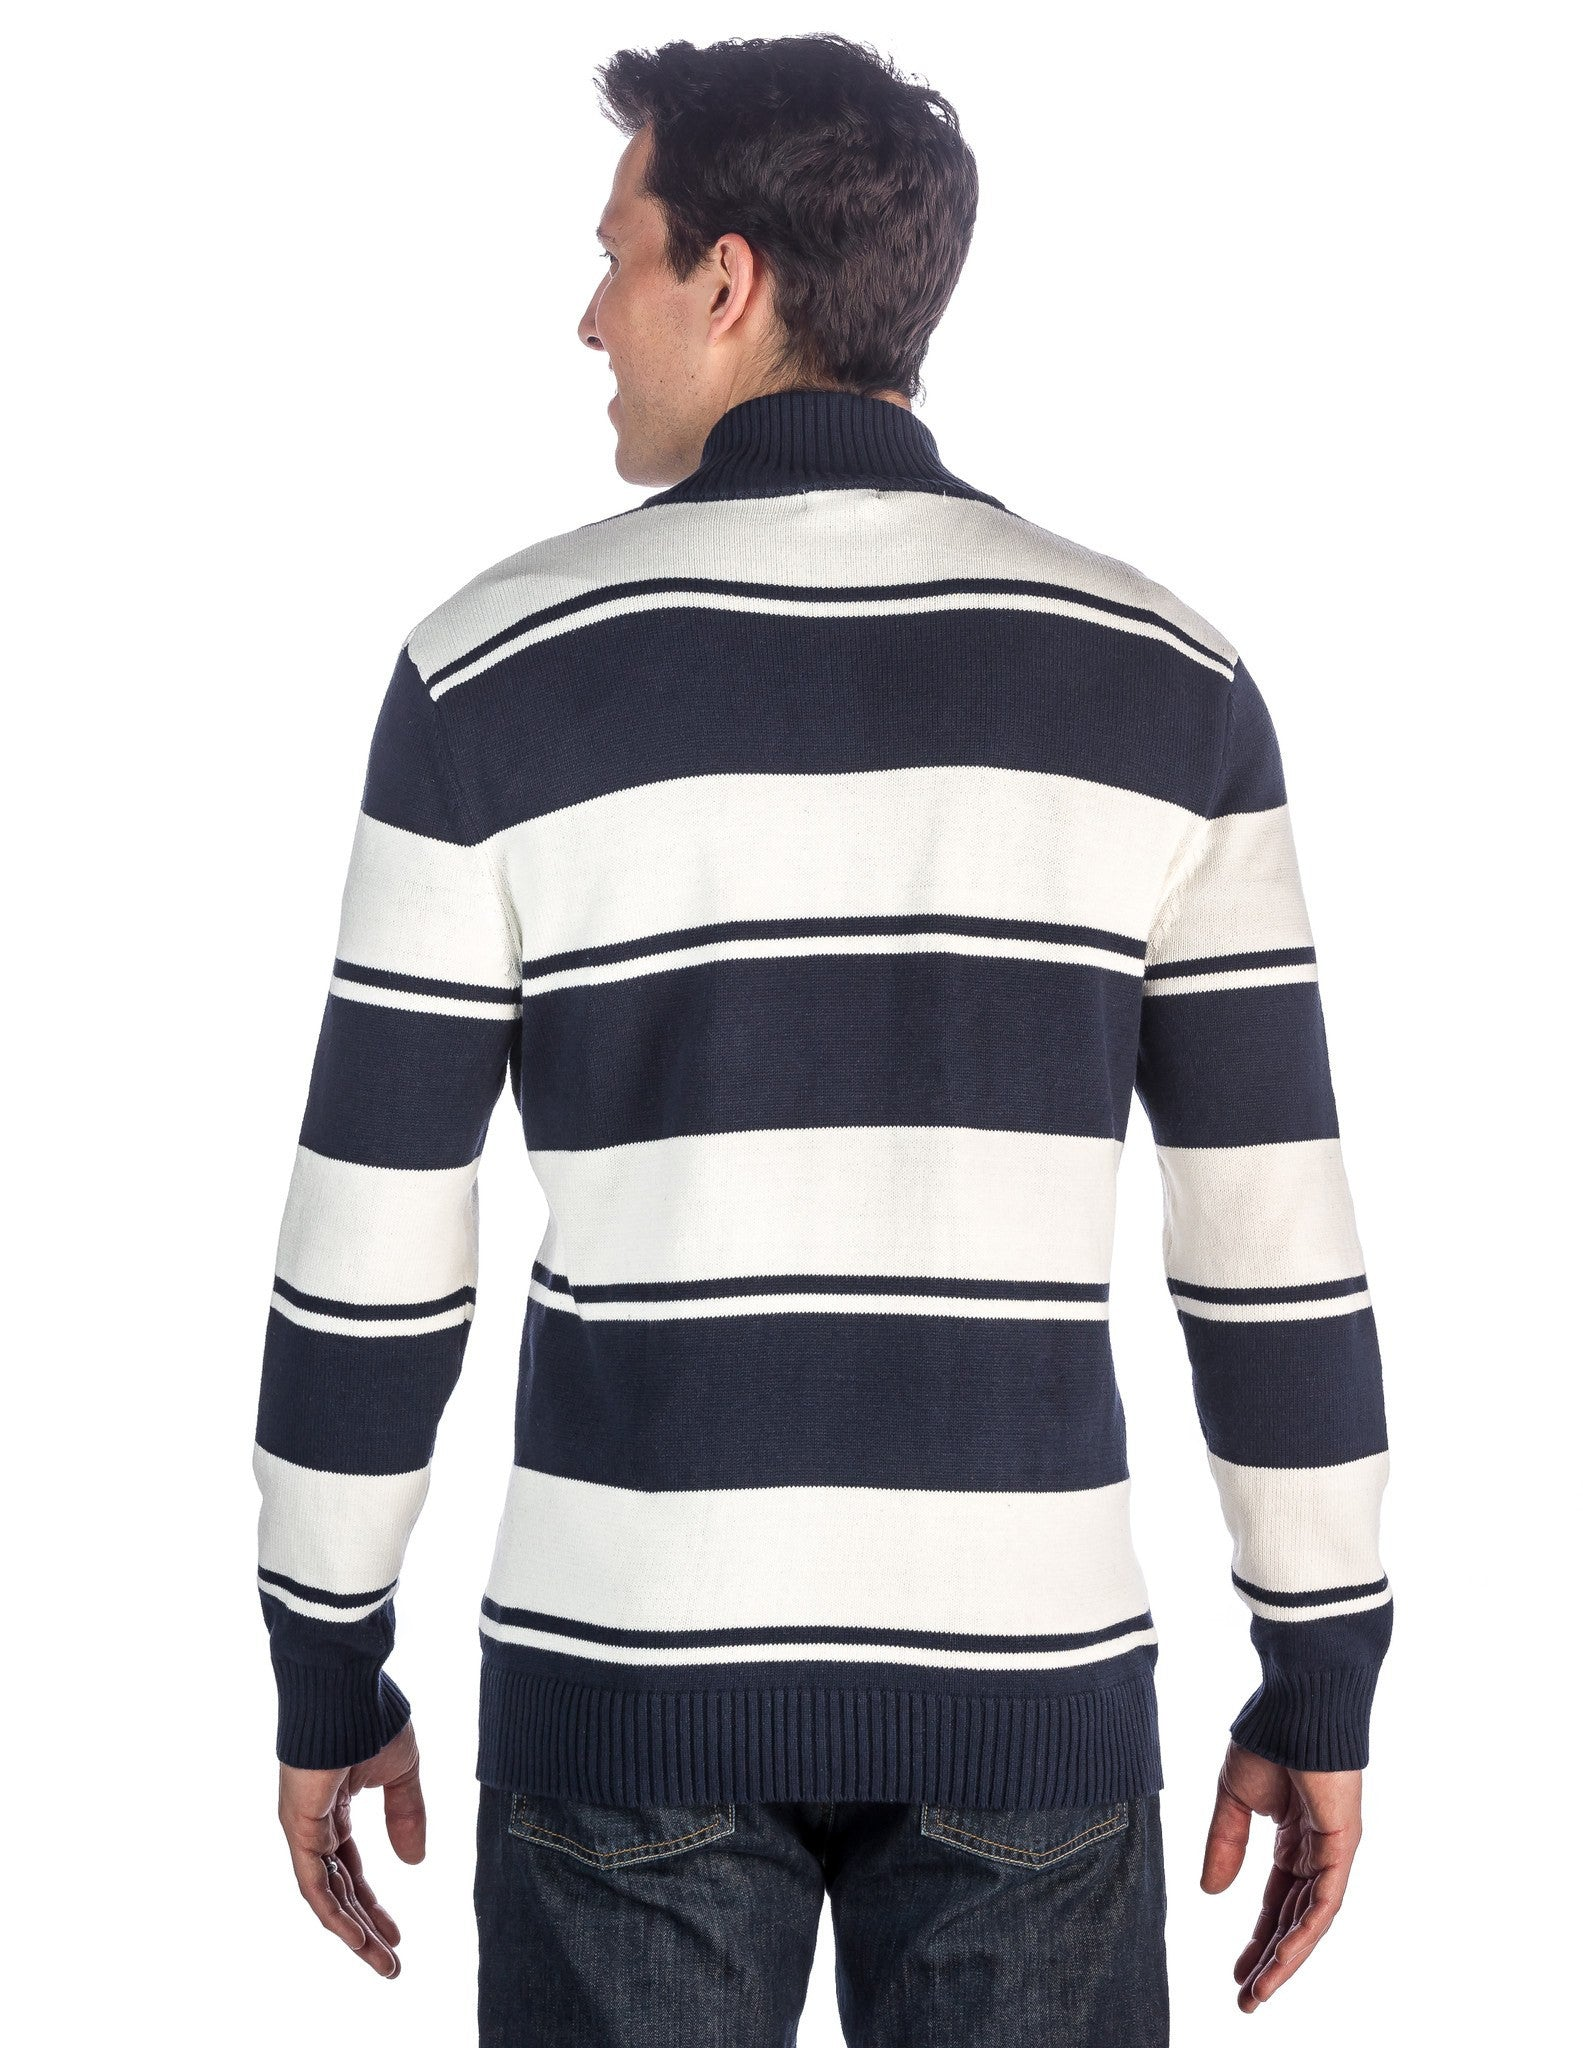 Combo Stripes Navy-Ivory